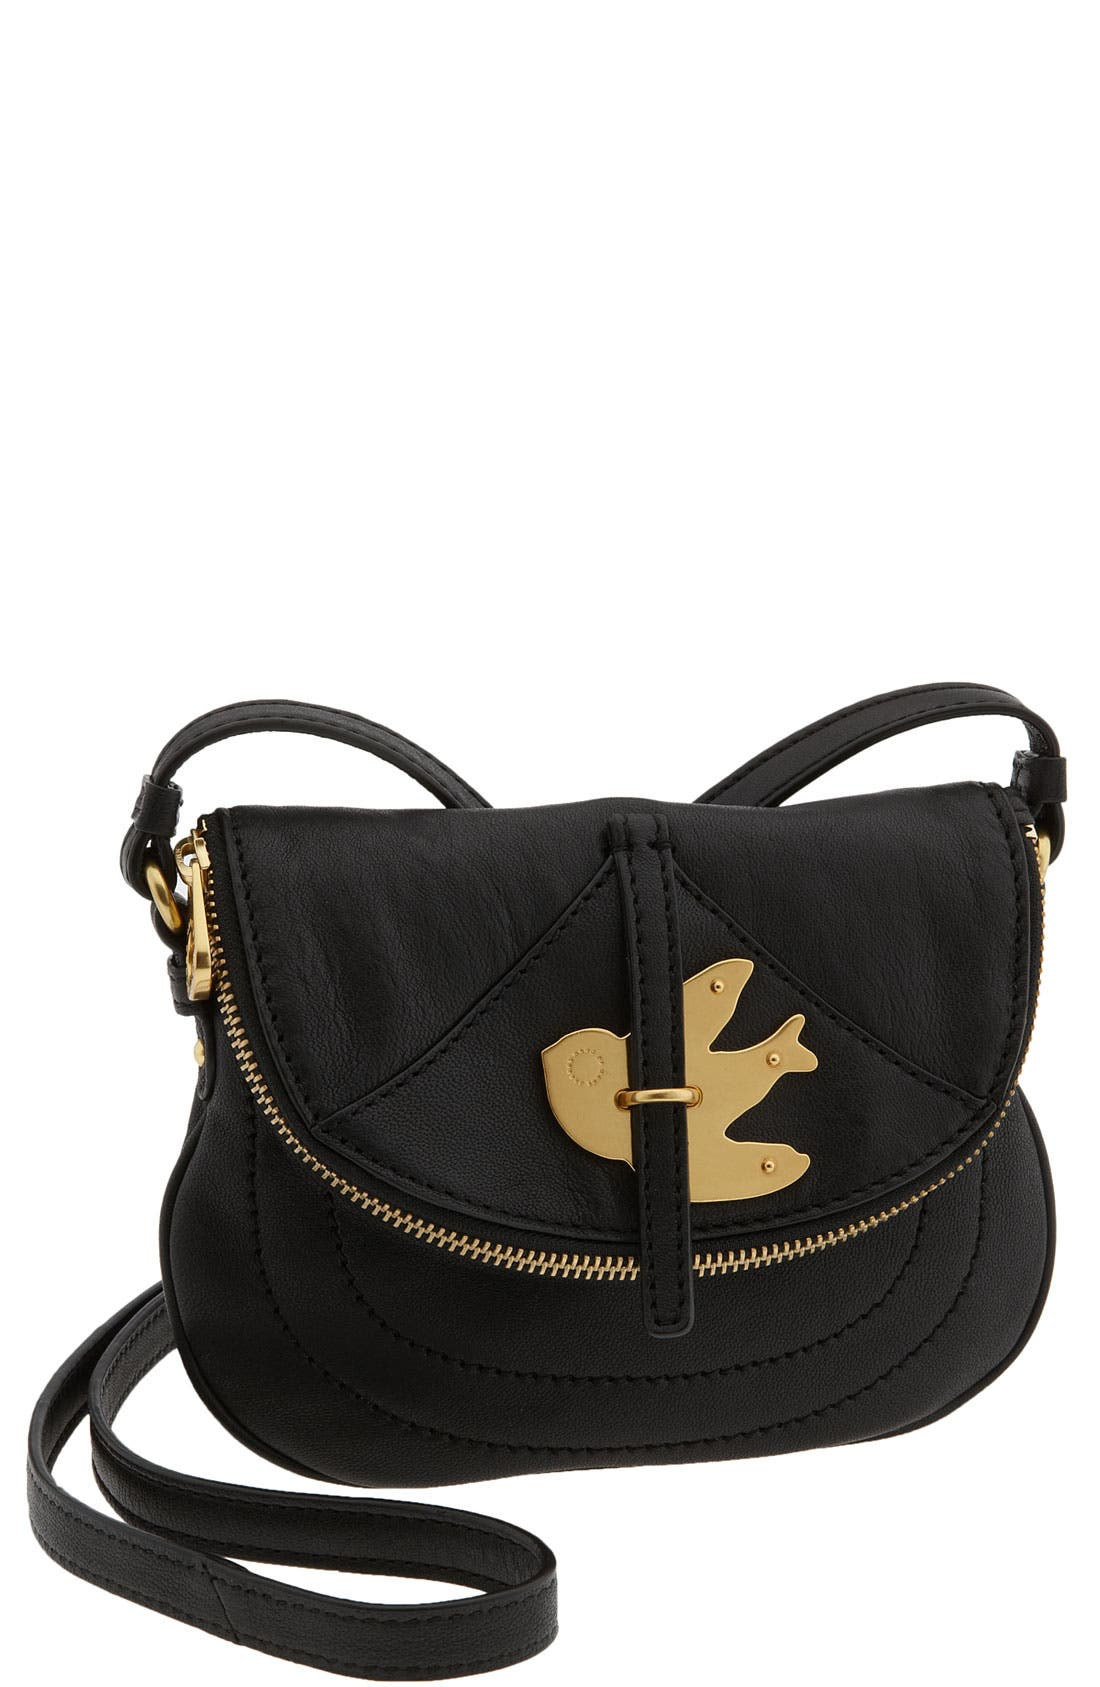 MARC BY MARC JACOBS 'Petal to the Metal' Flap Pouchette,                         Main,                         color, Black